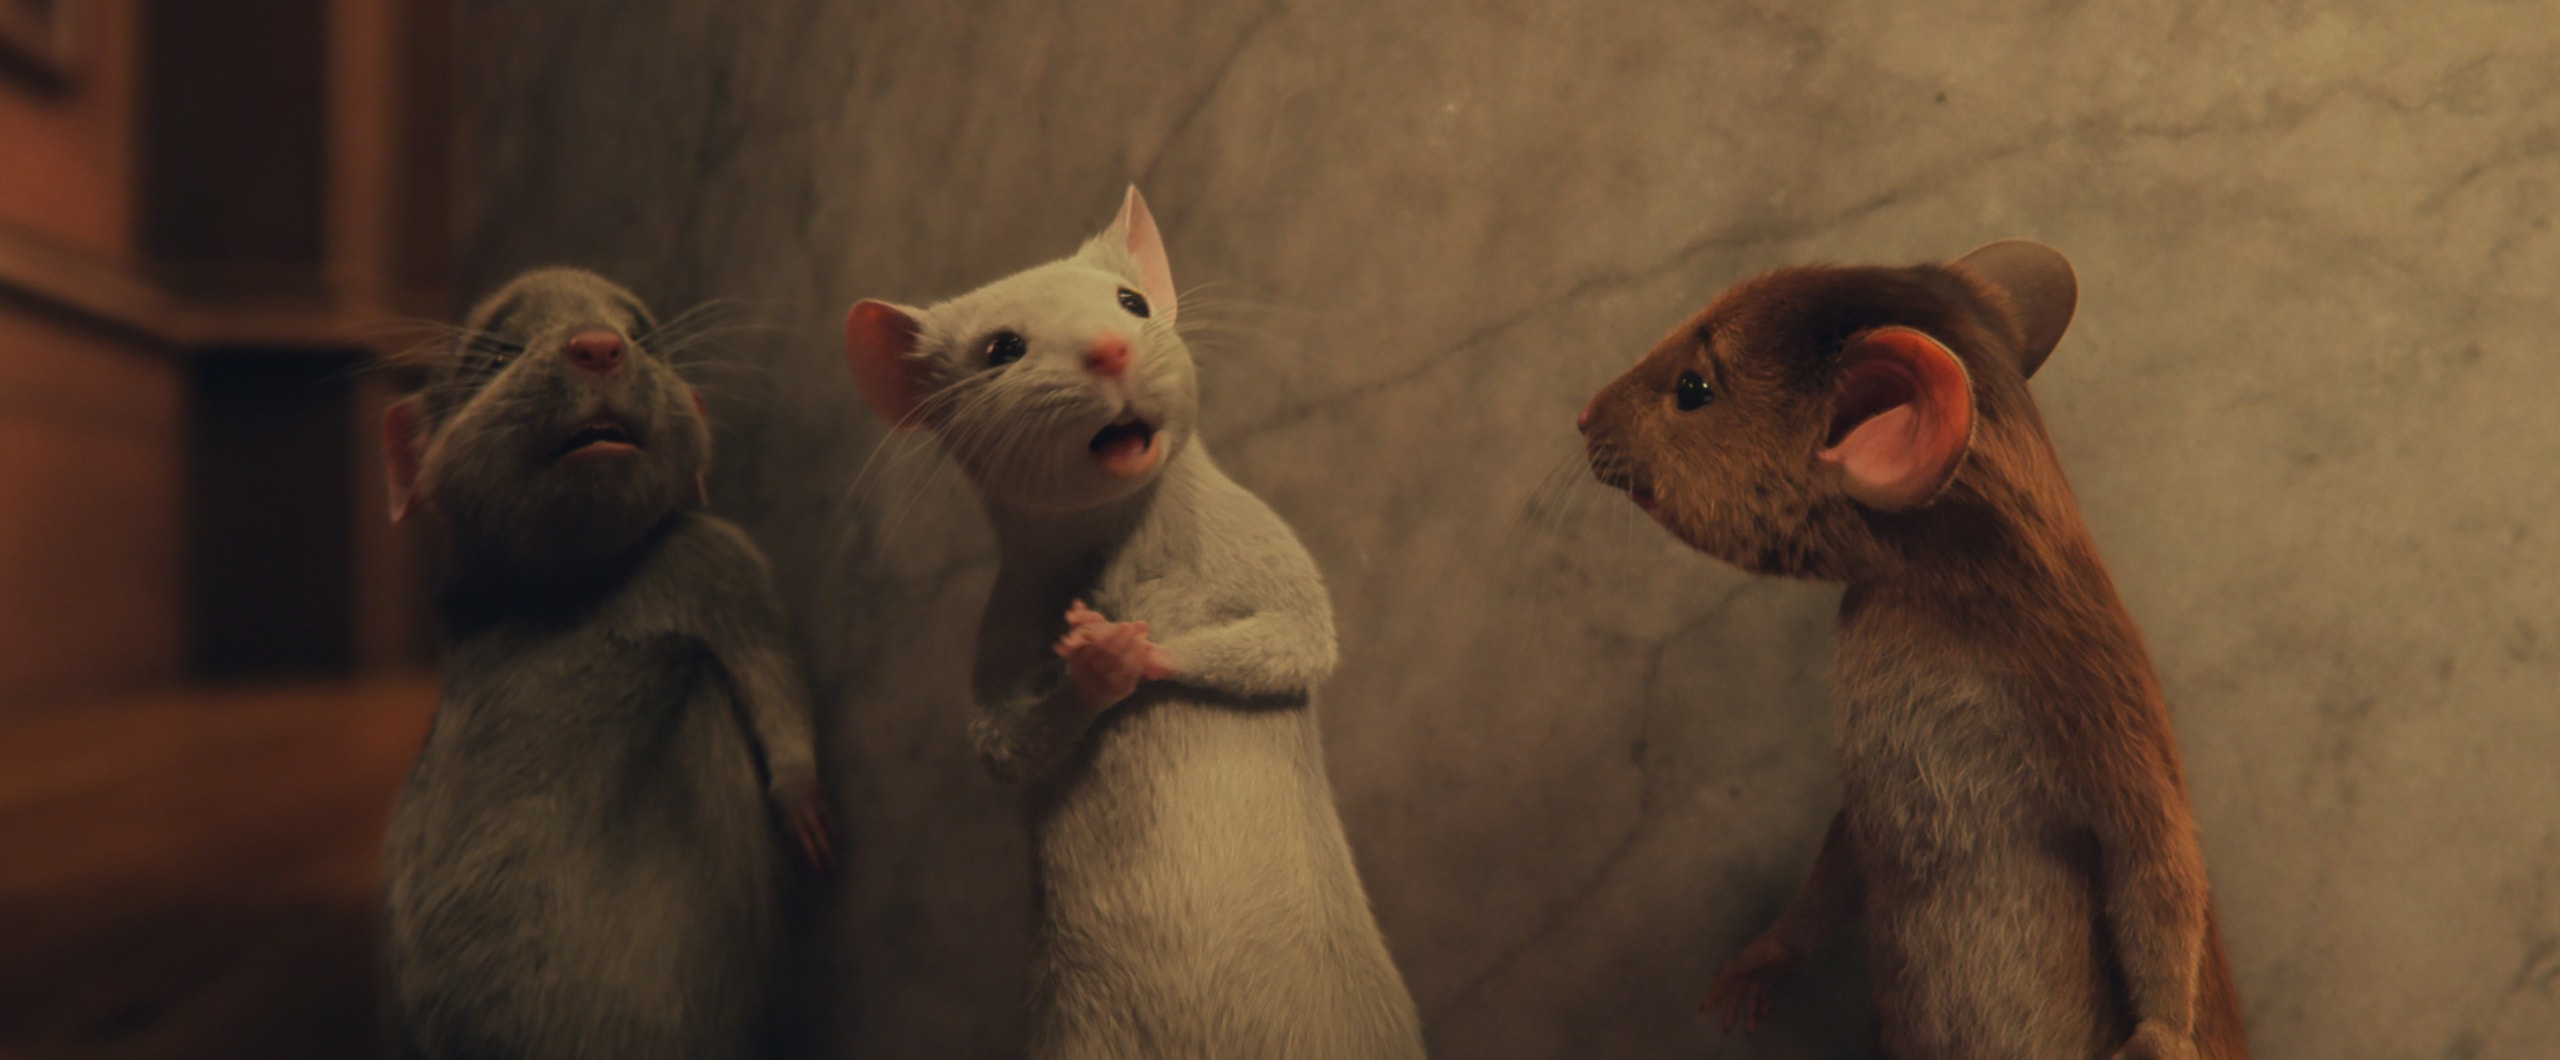 The Witches Movie Mice